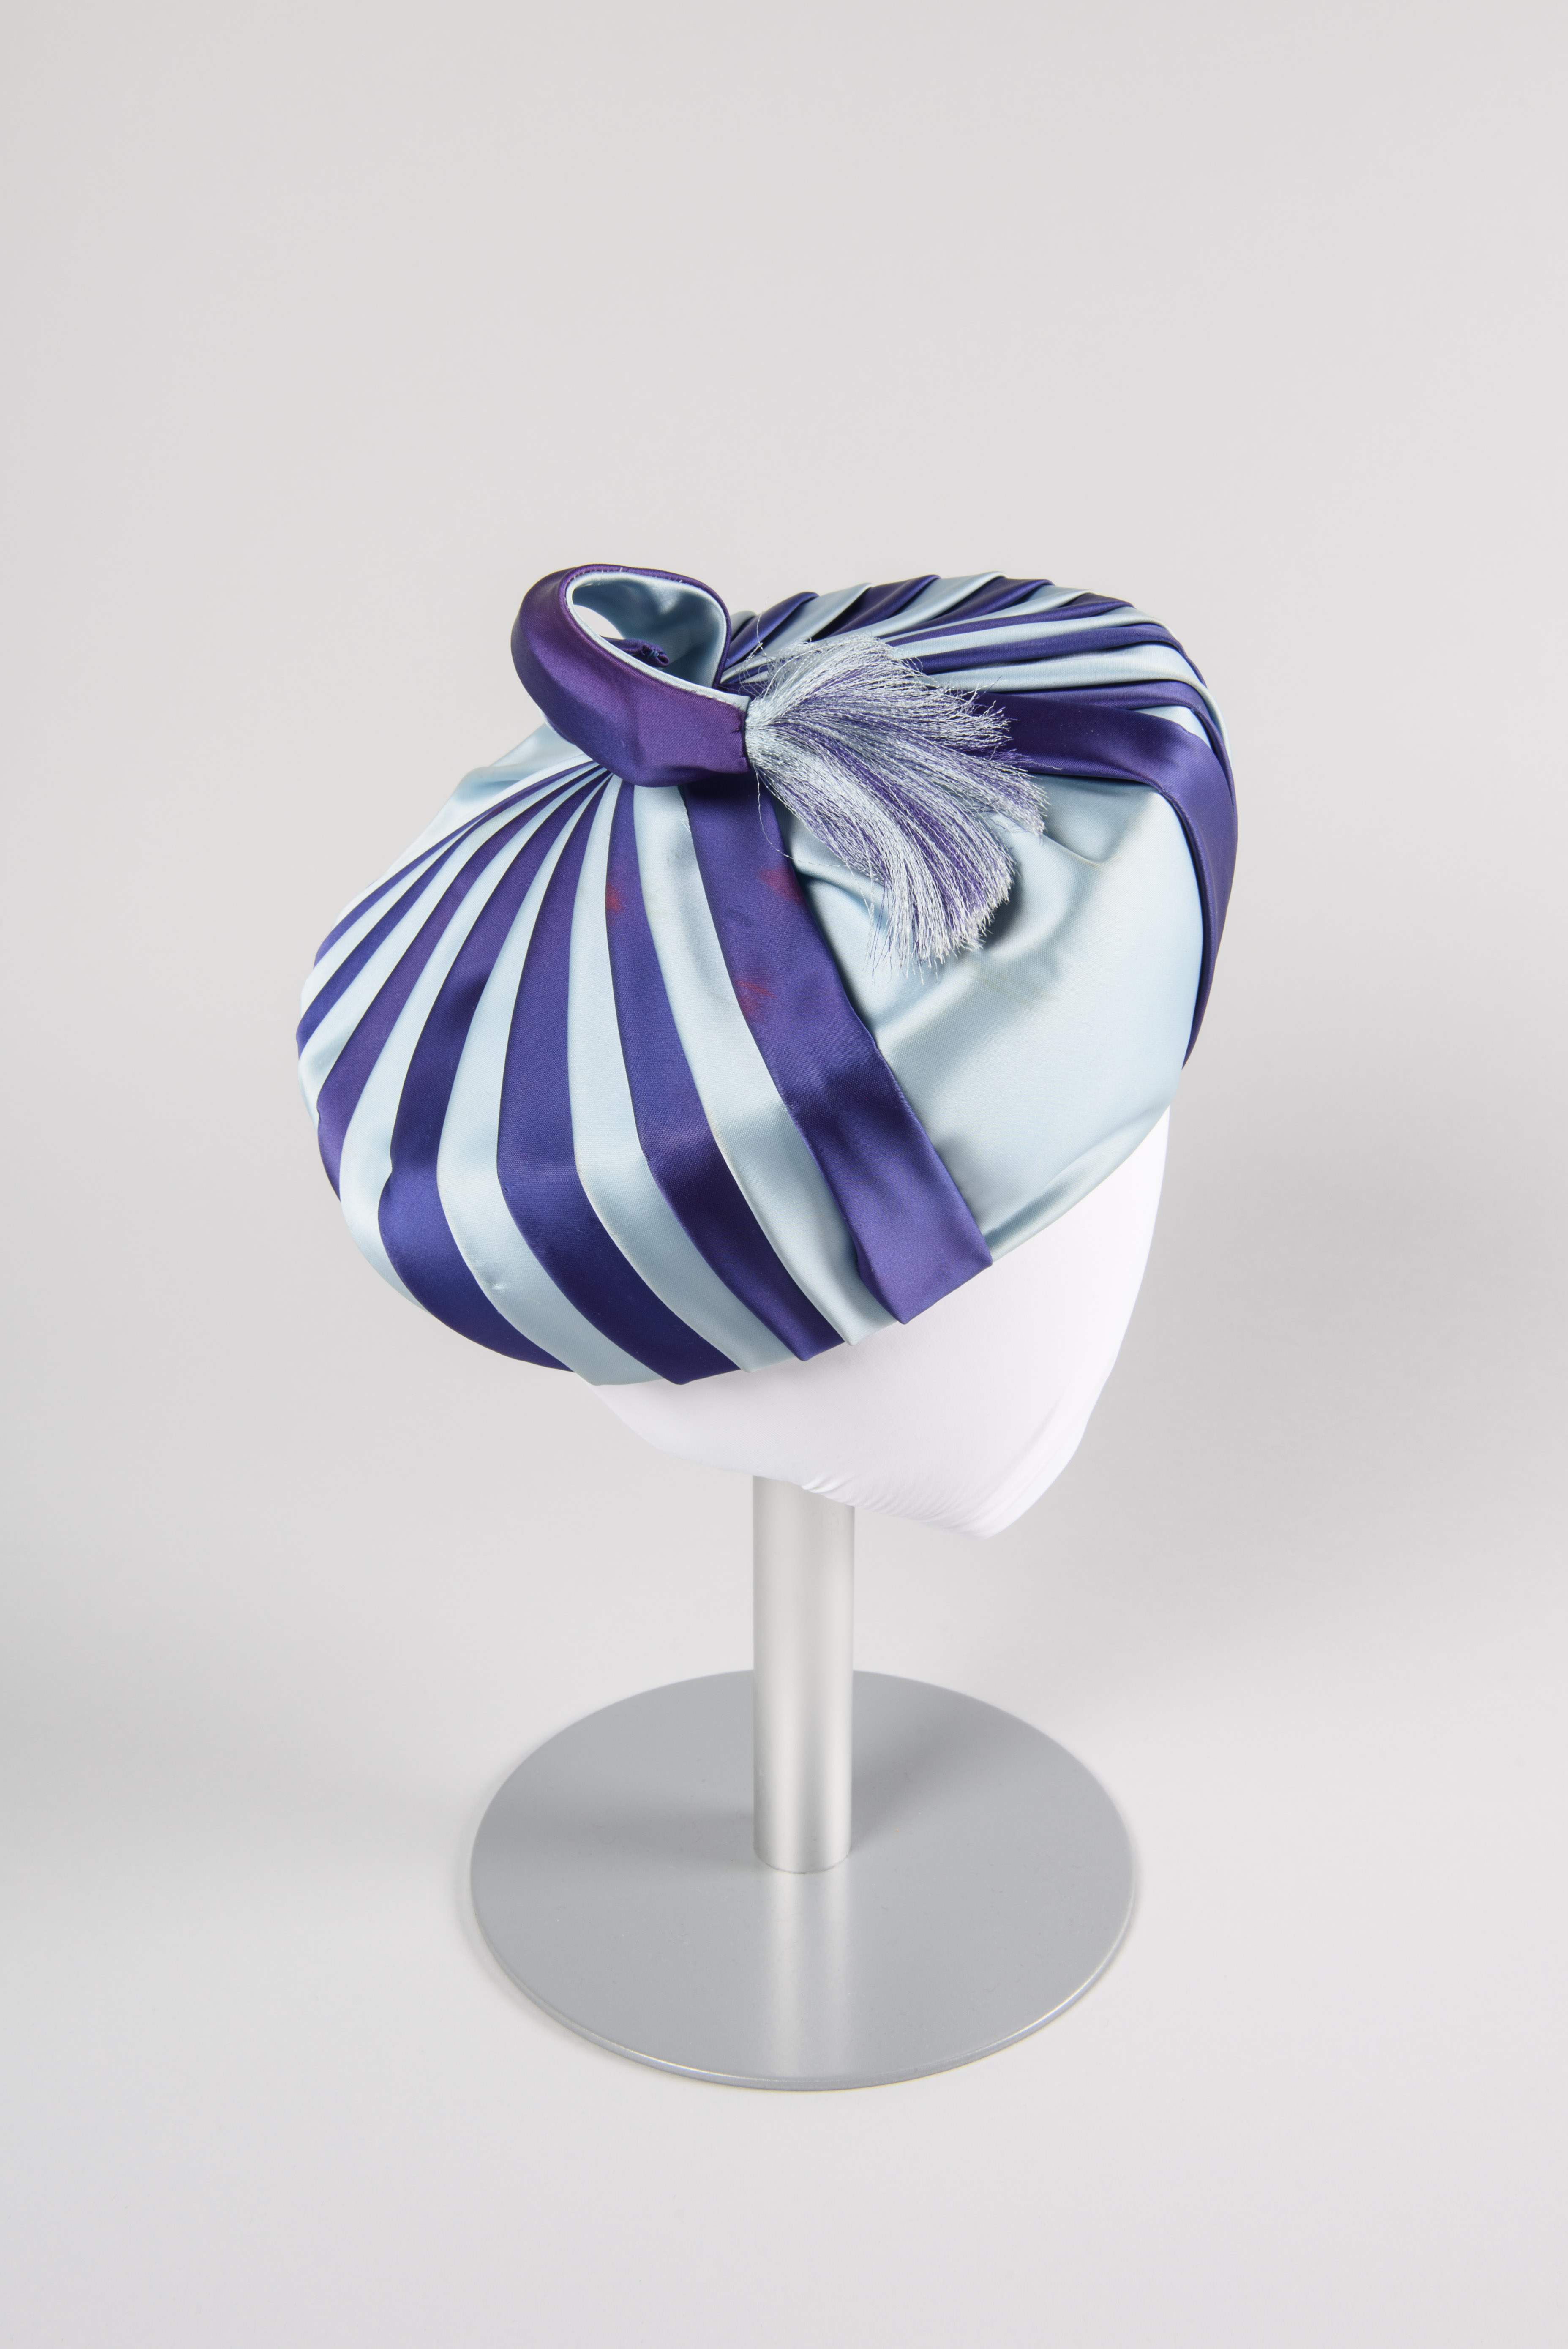 Striped toque, about 1963, John Eaton, Seattle, maker. Gift of Seattle Goodwill Industries copyright MOHAI Collection.